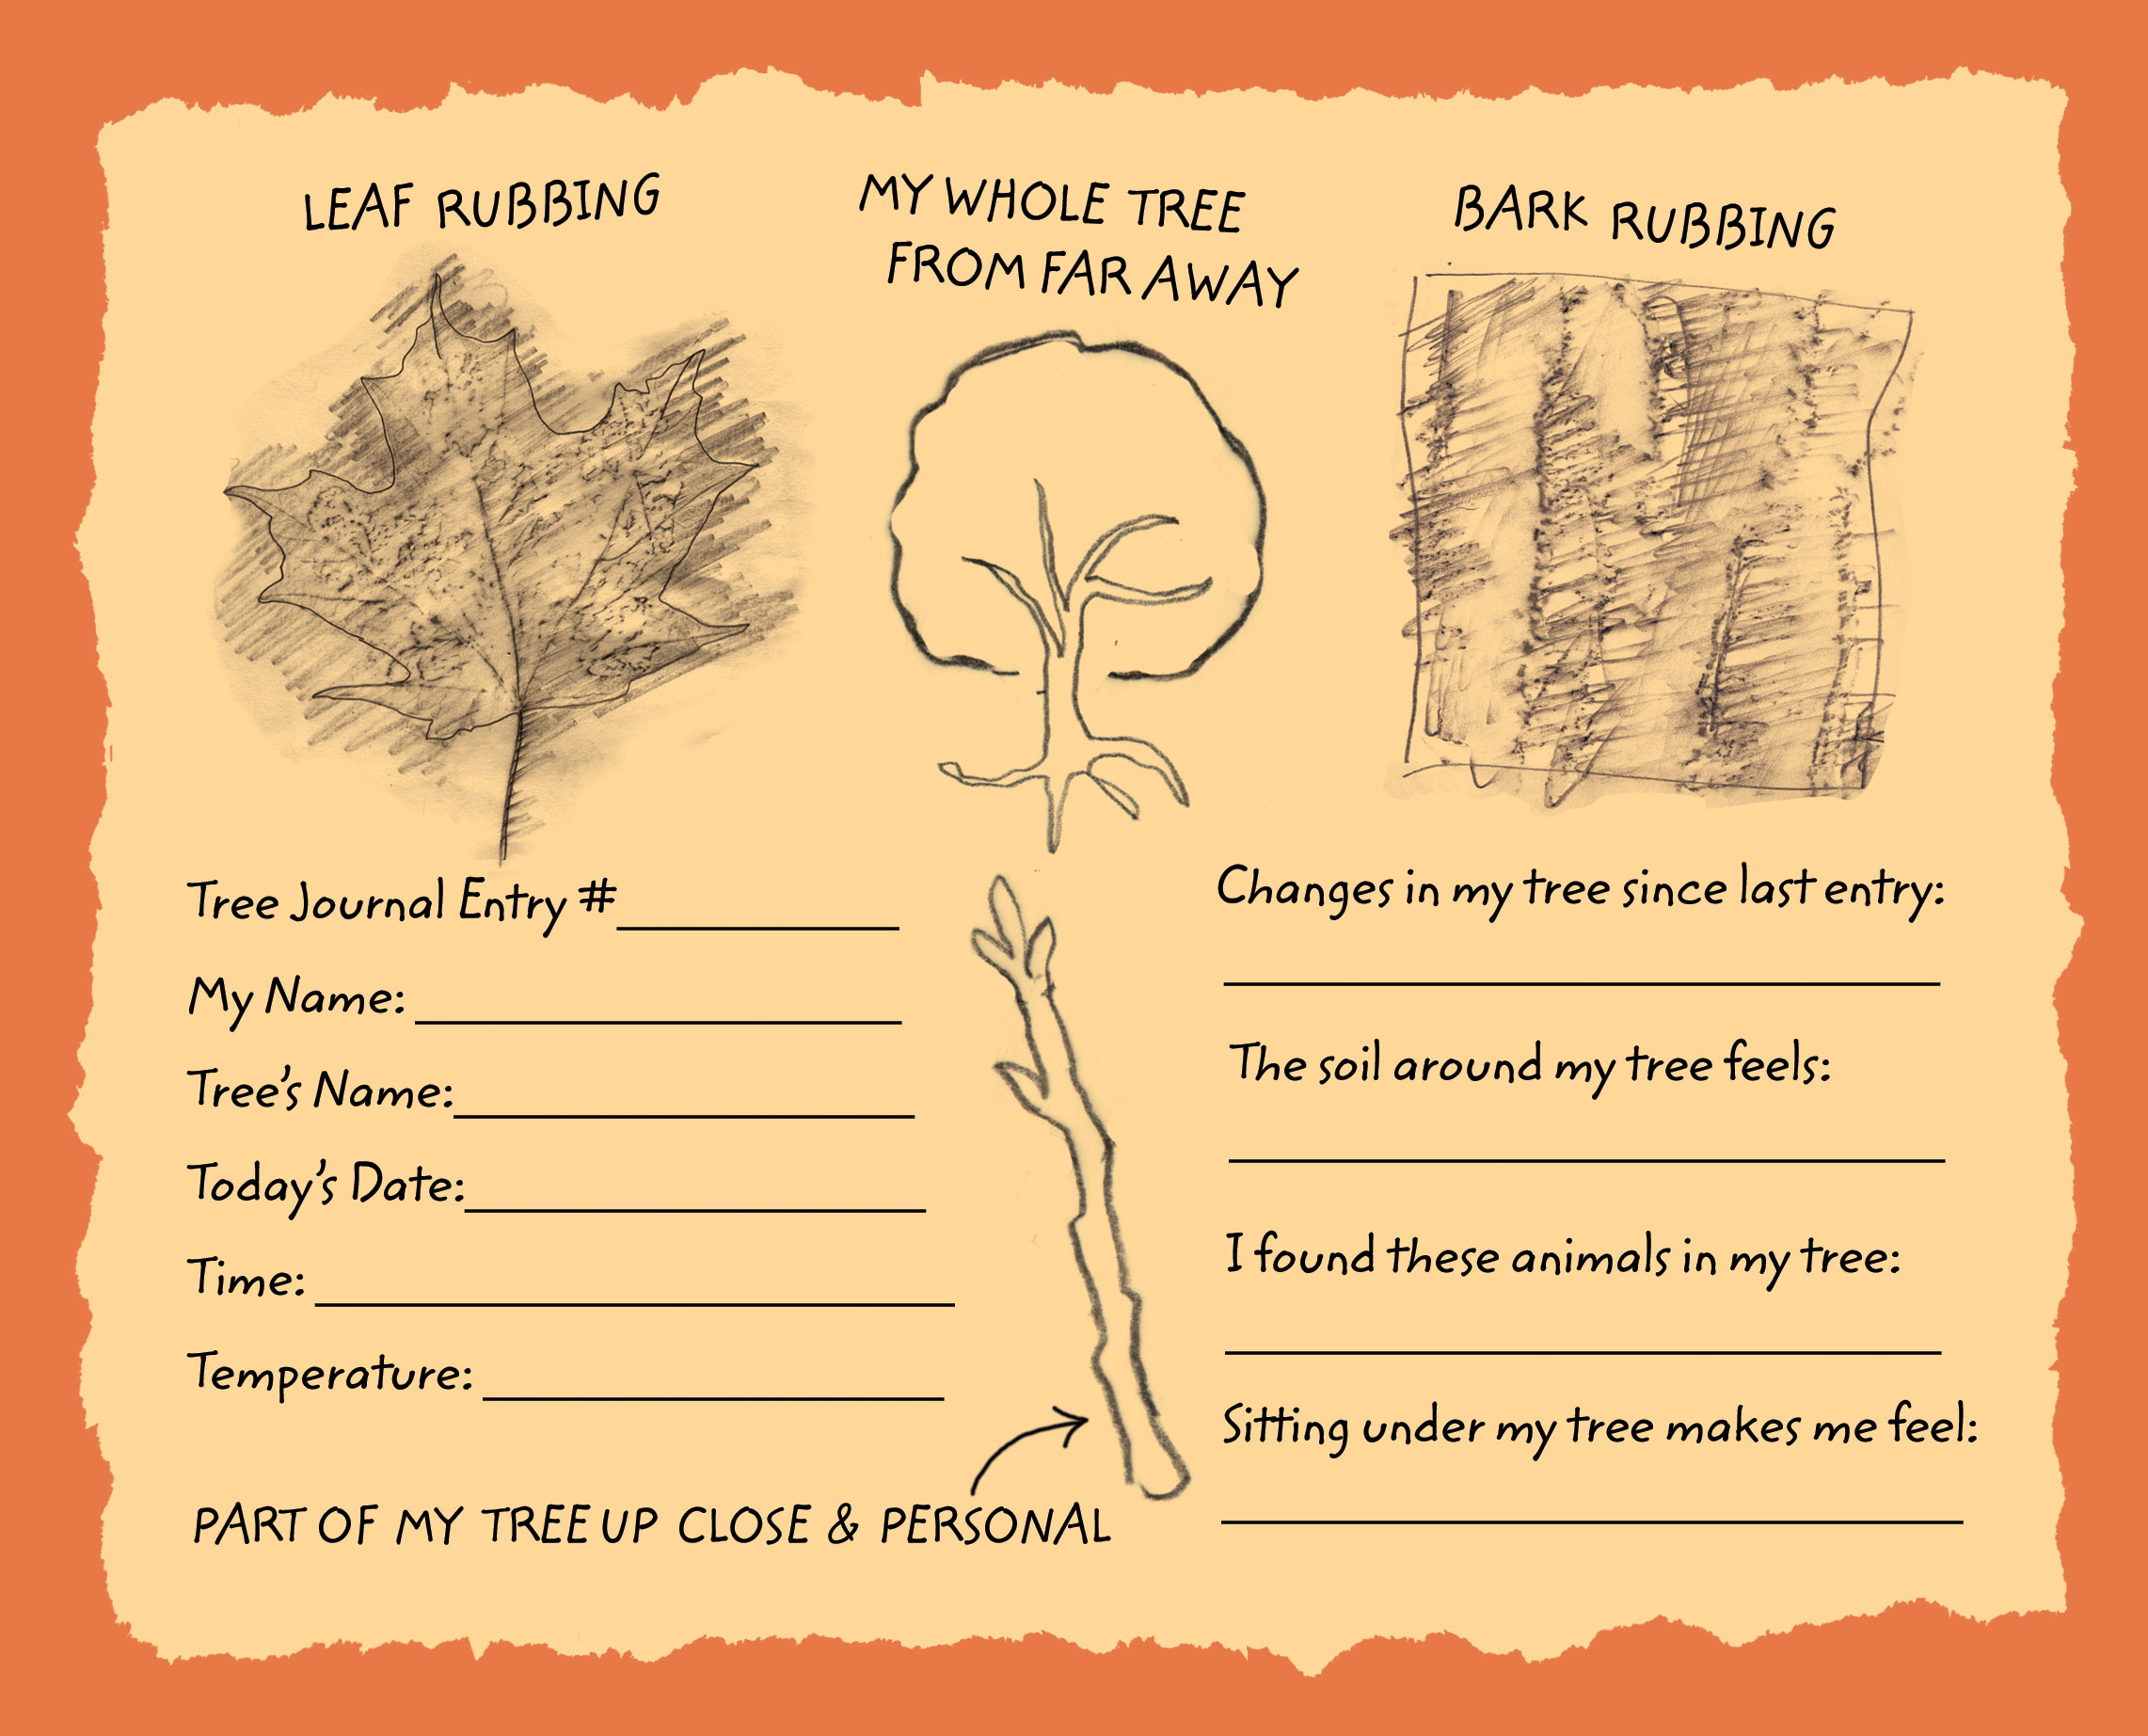 A journal page with rubbings of a leaf and bark